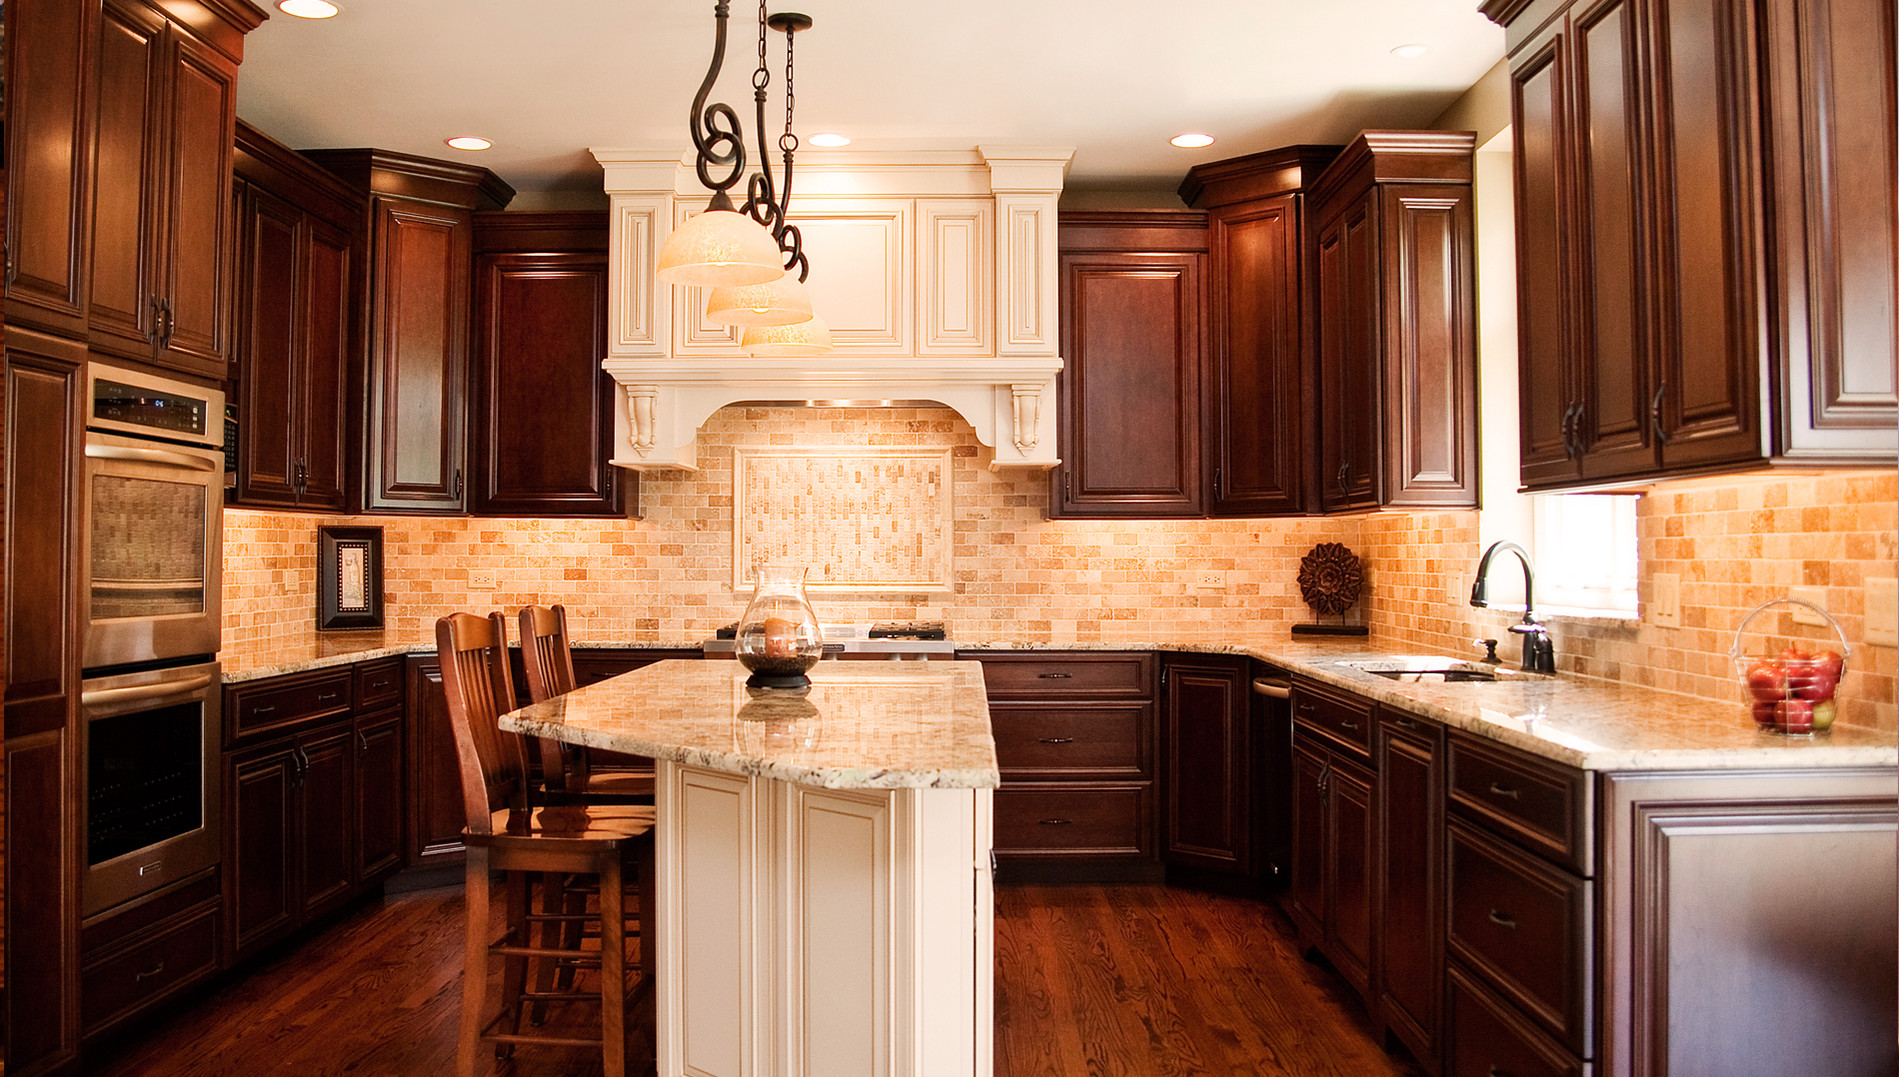 Kitchen Cabinets Naperville, Aurora, Wheaton  River Oak Cabinetry